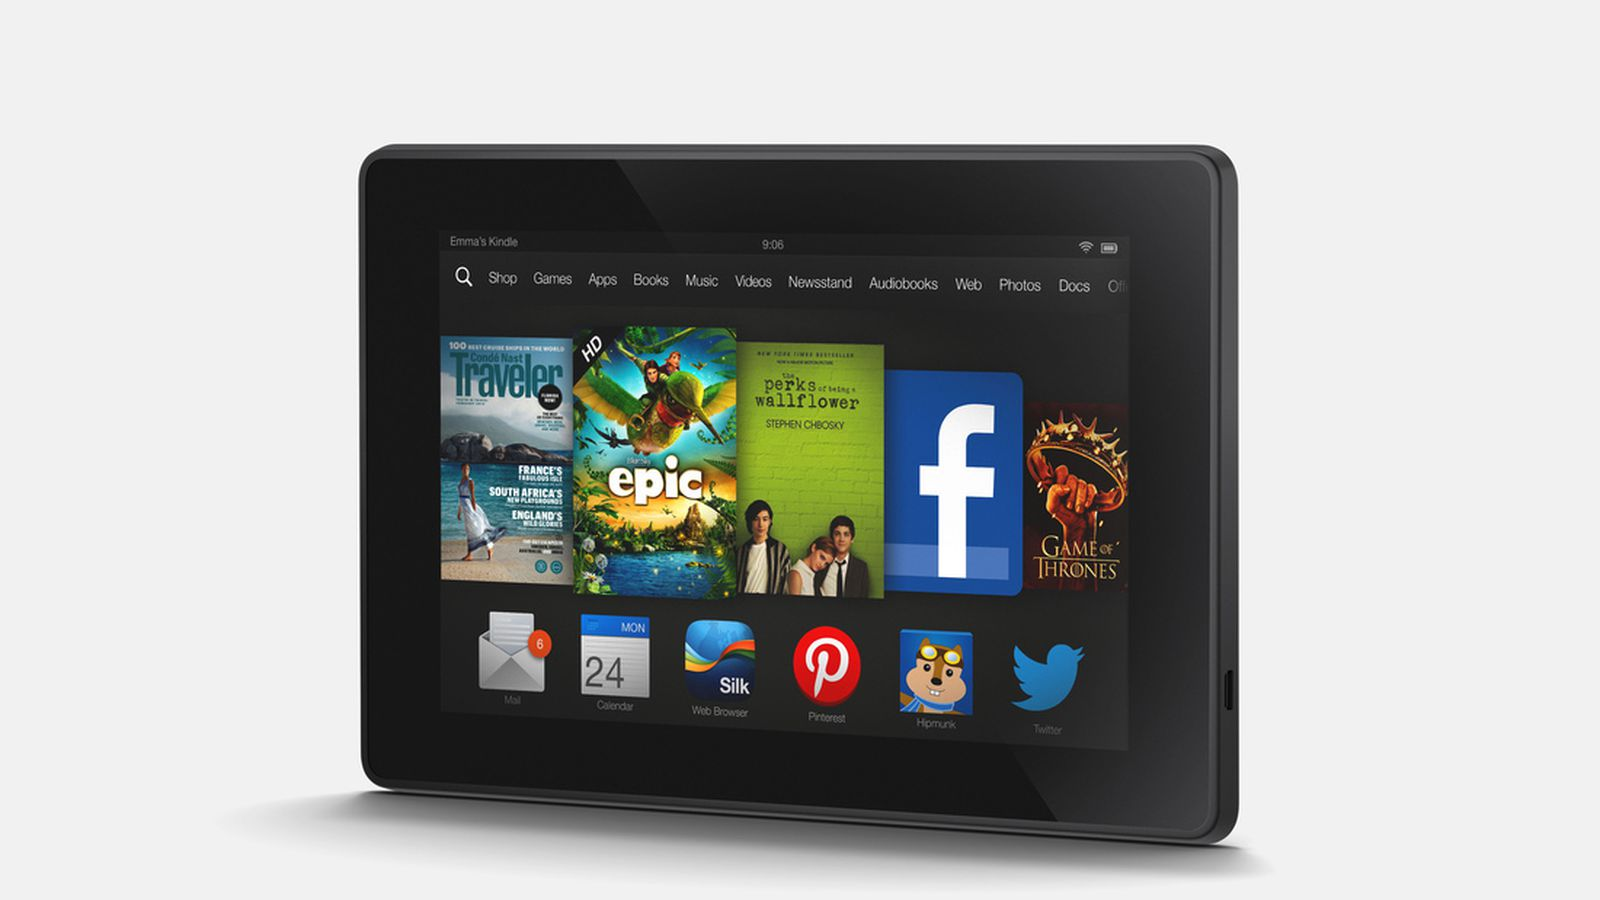 amazon kindle fire hd tablet review